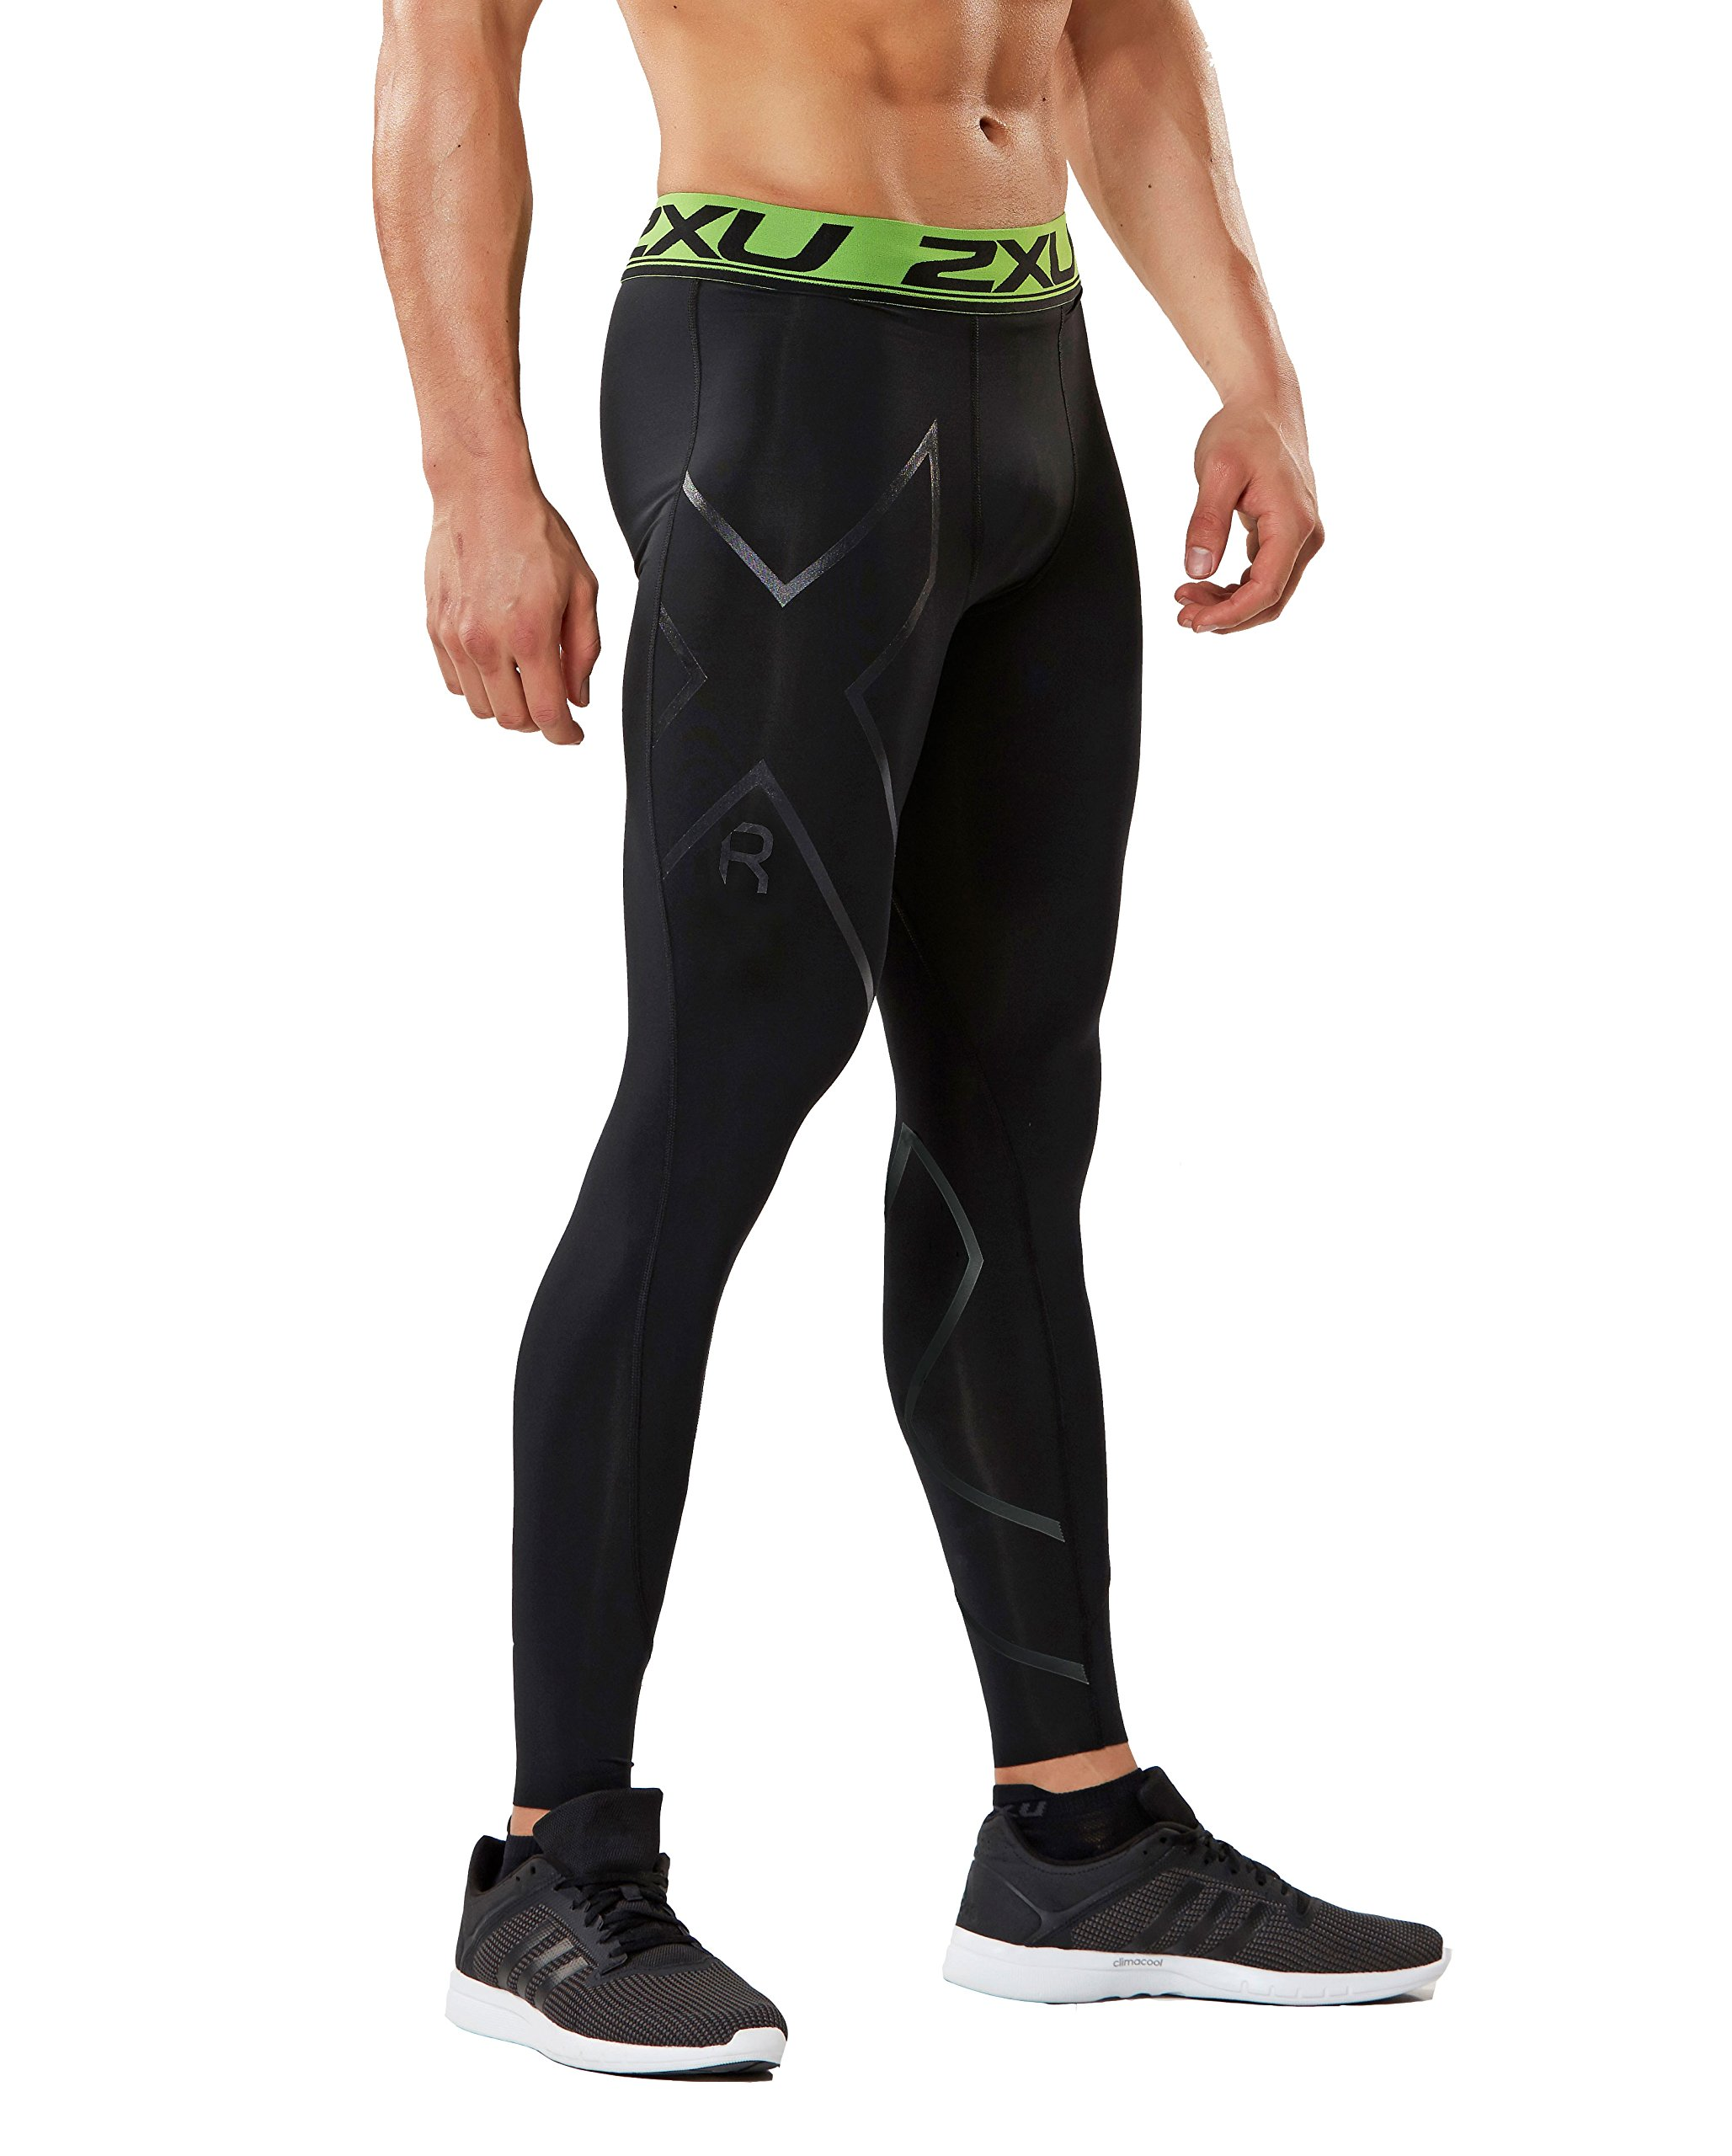 2XU Refresh Recovery Compression Tights